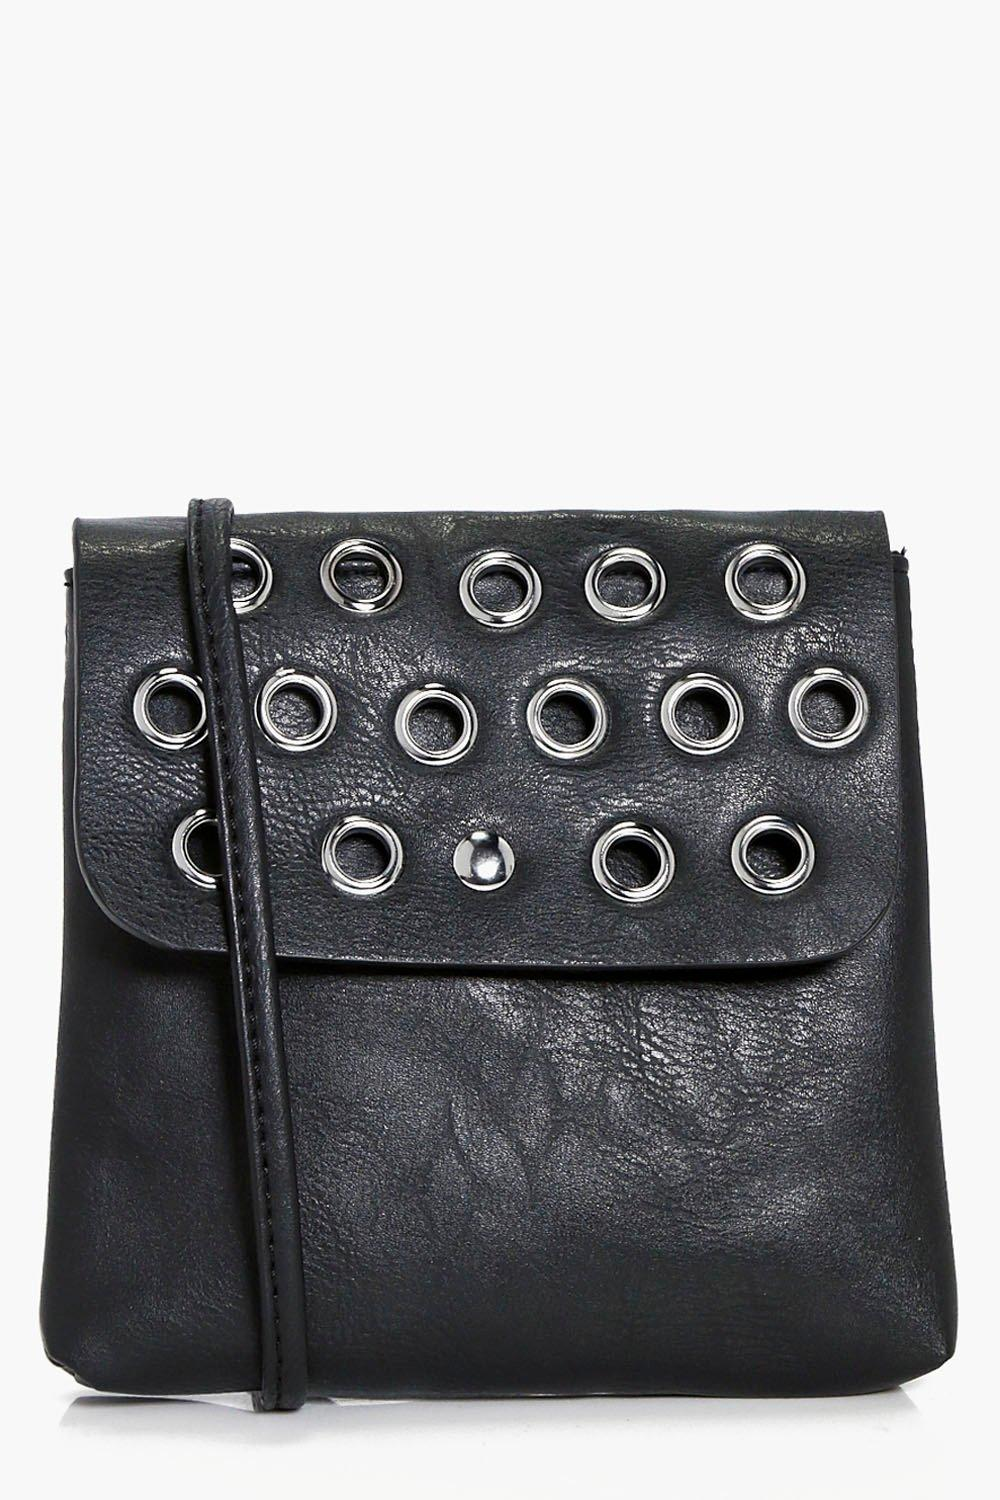 Eyelet Flap Cross Body Bag - black - Rachel Eyelet